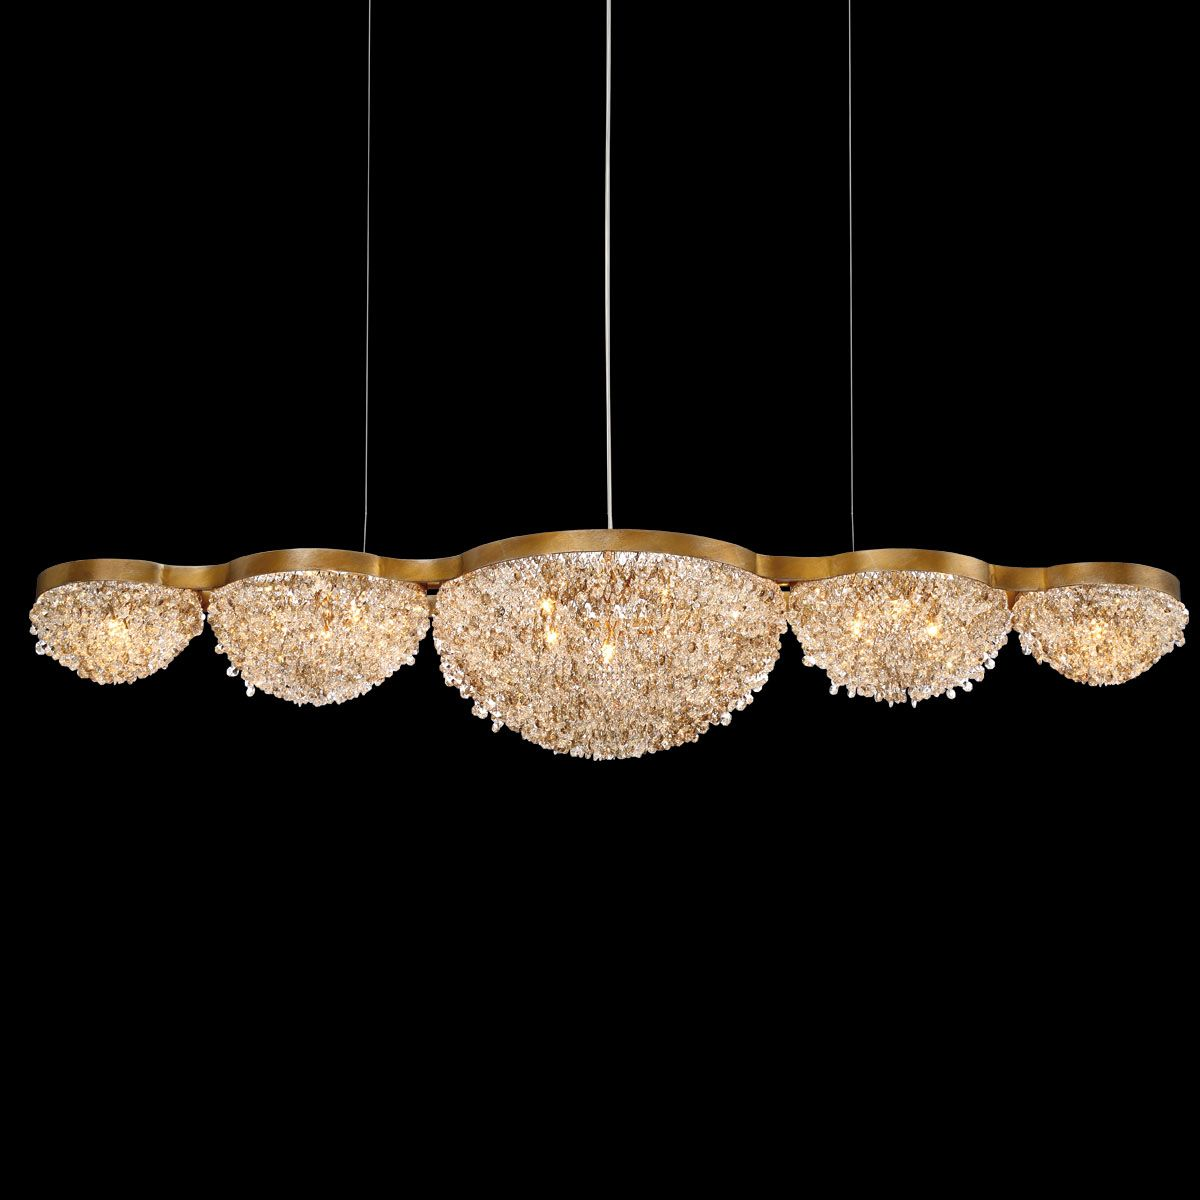 eurofase lighting chandeliers willowelectric willowelectrical